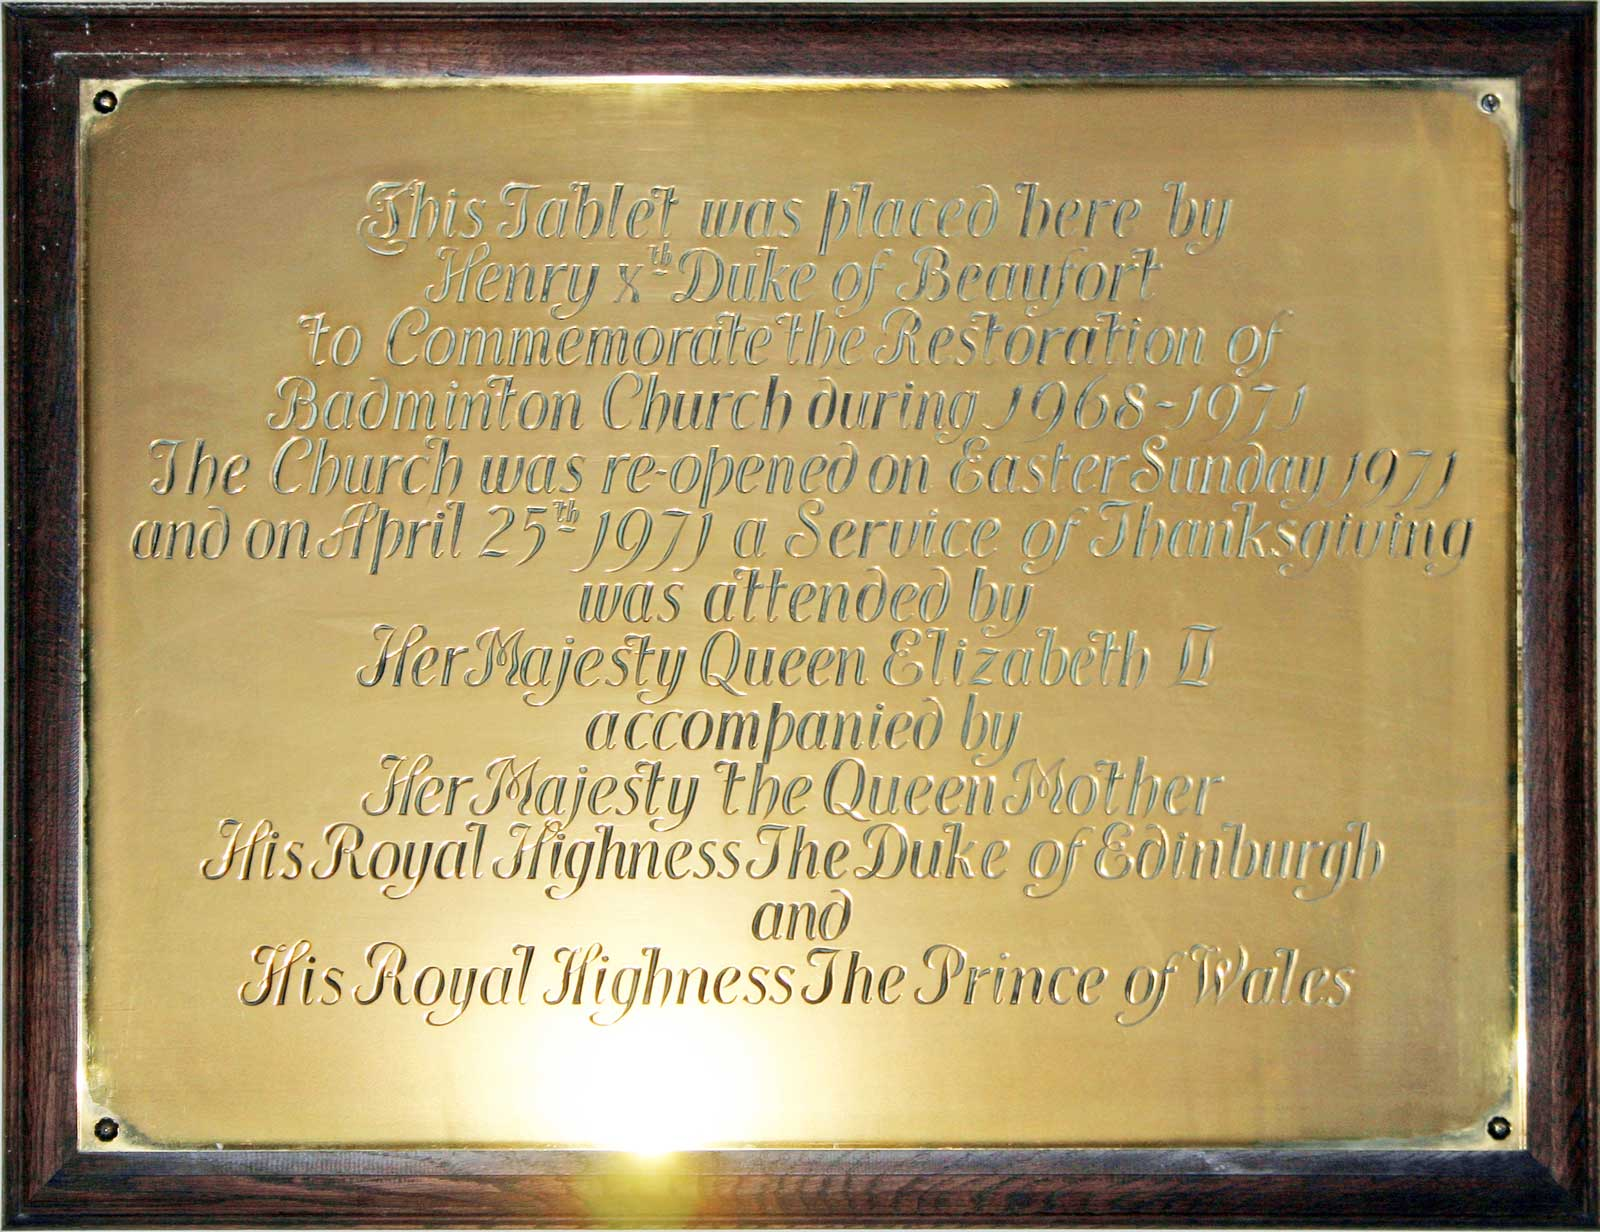 Brass plaque to Commemorate the 1971 Restoration of Great Badminton